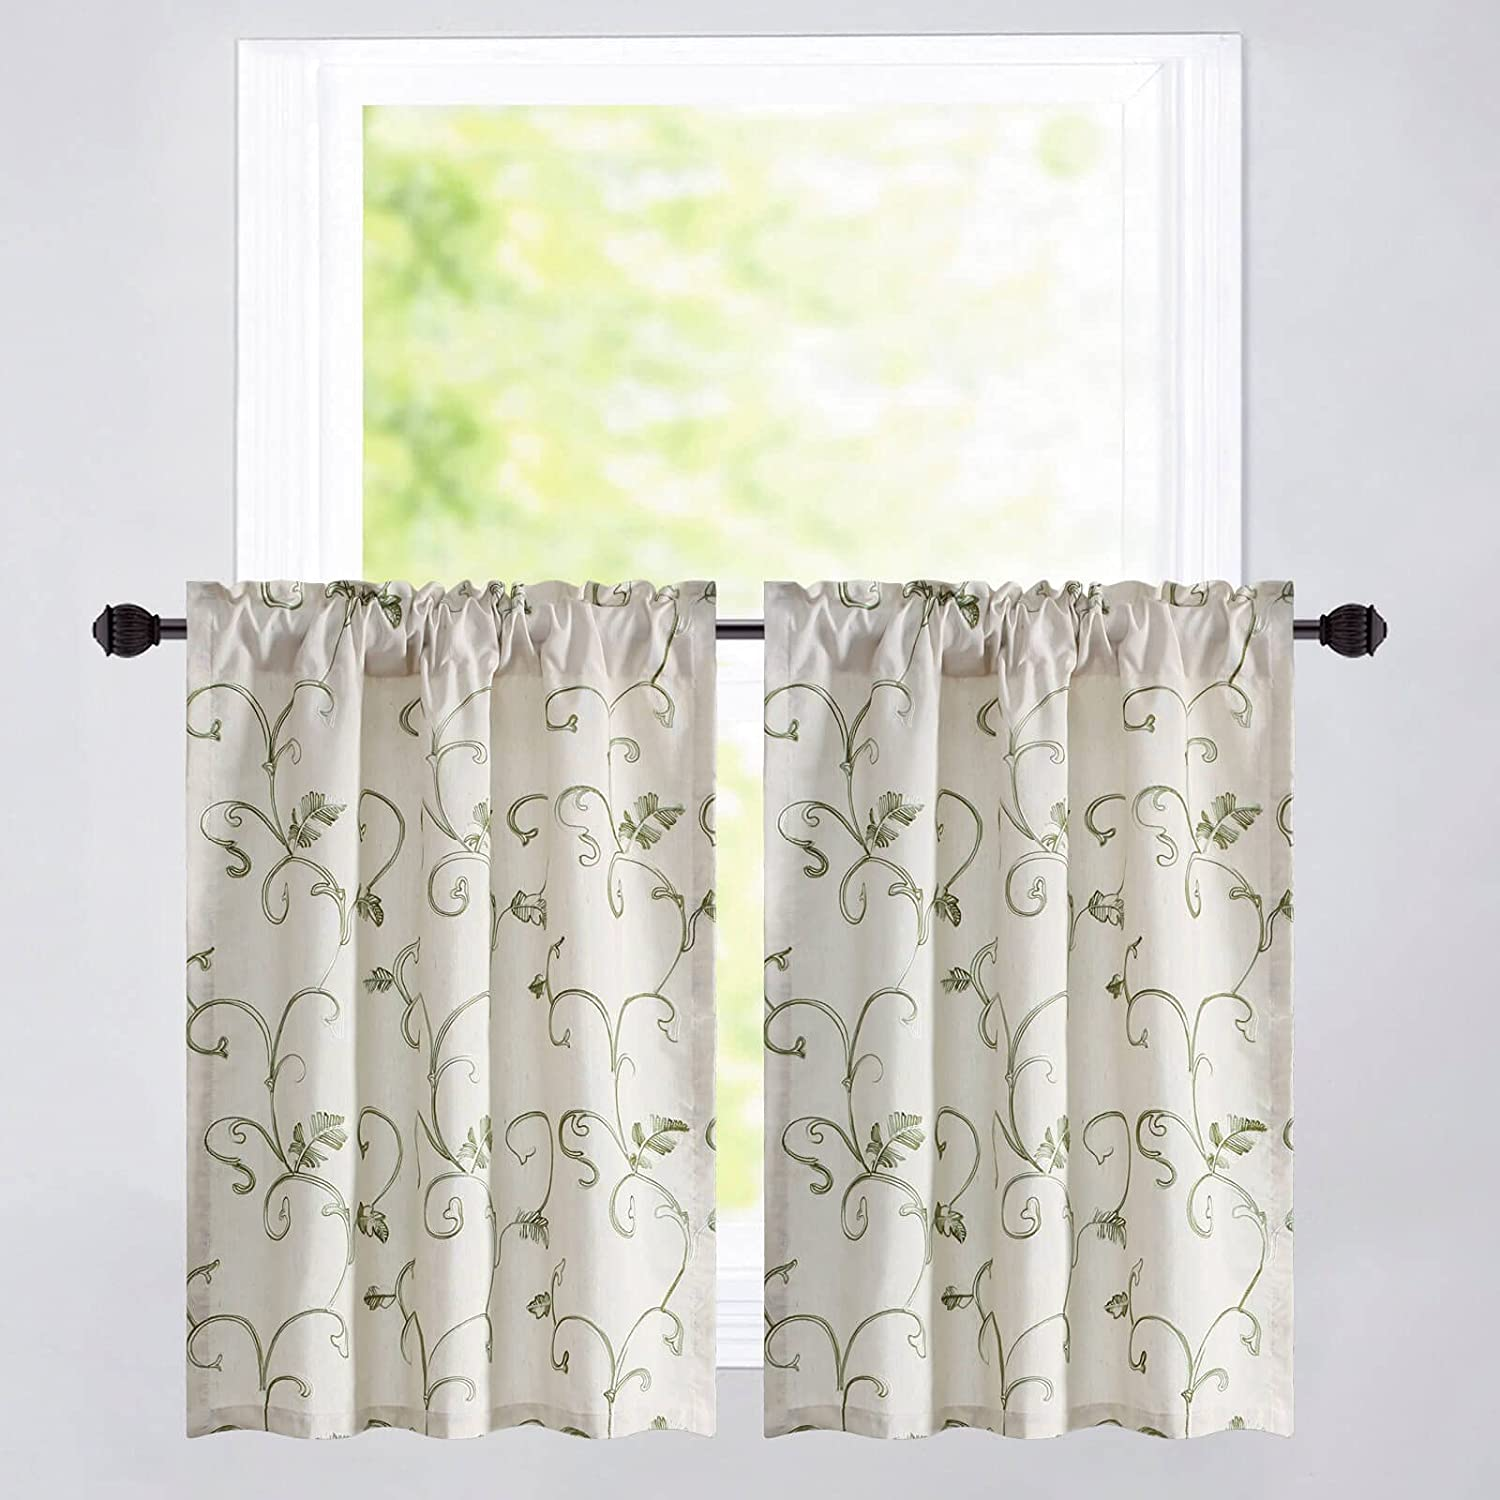 VOGOL Kitchen Tier Curtains 67% Trust OFF of fixed price Green Vines Embroidered Faux Linen